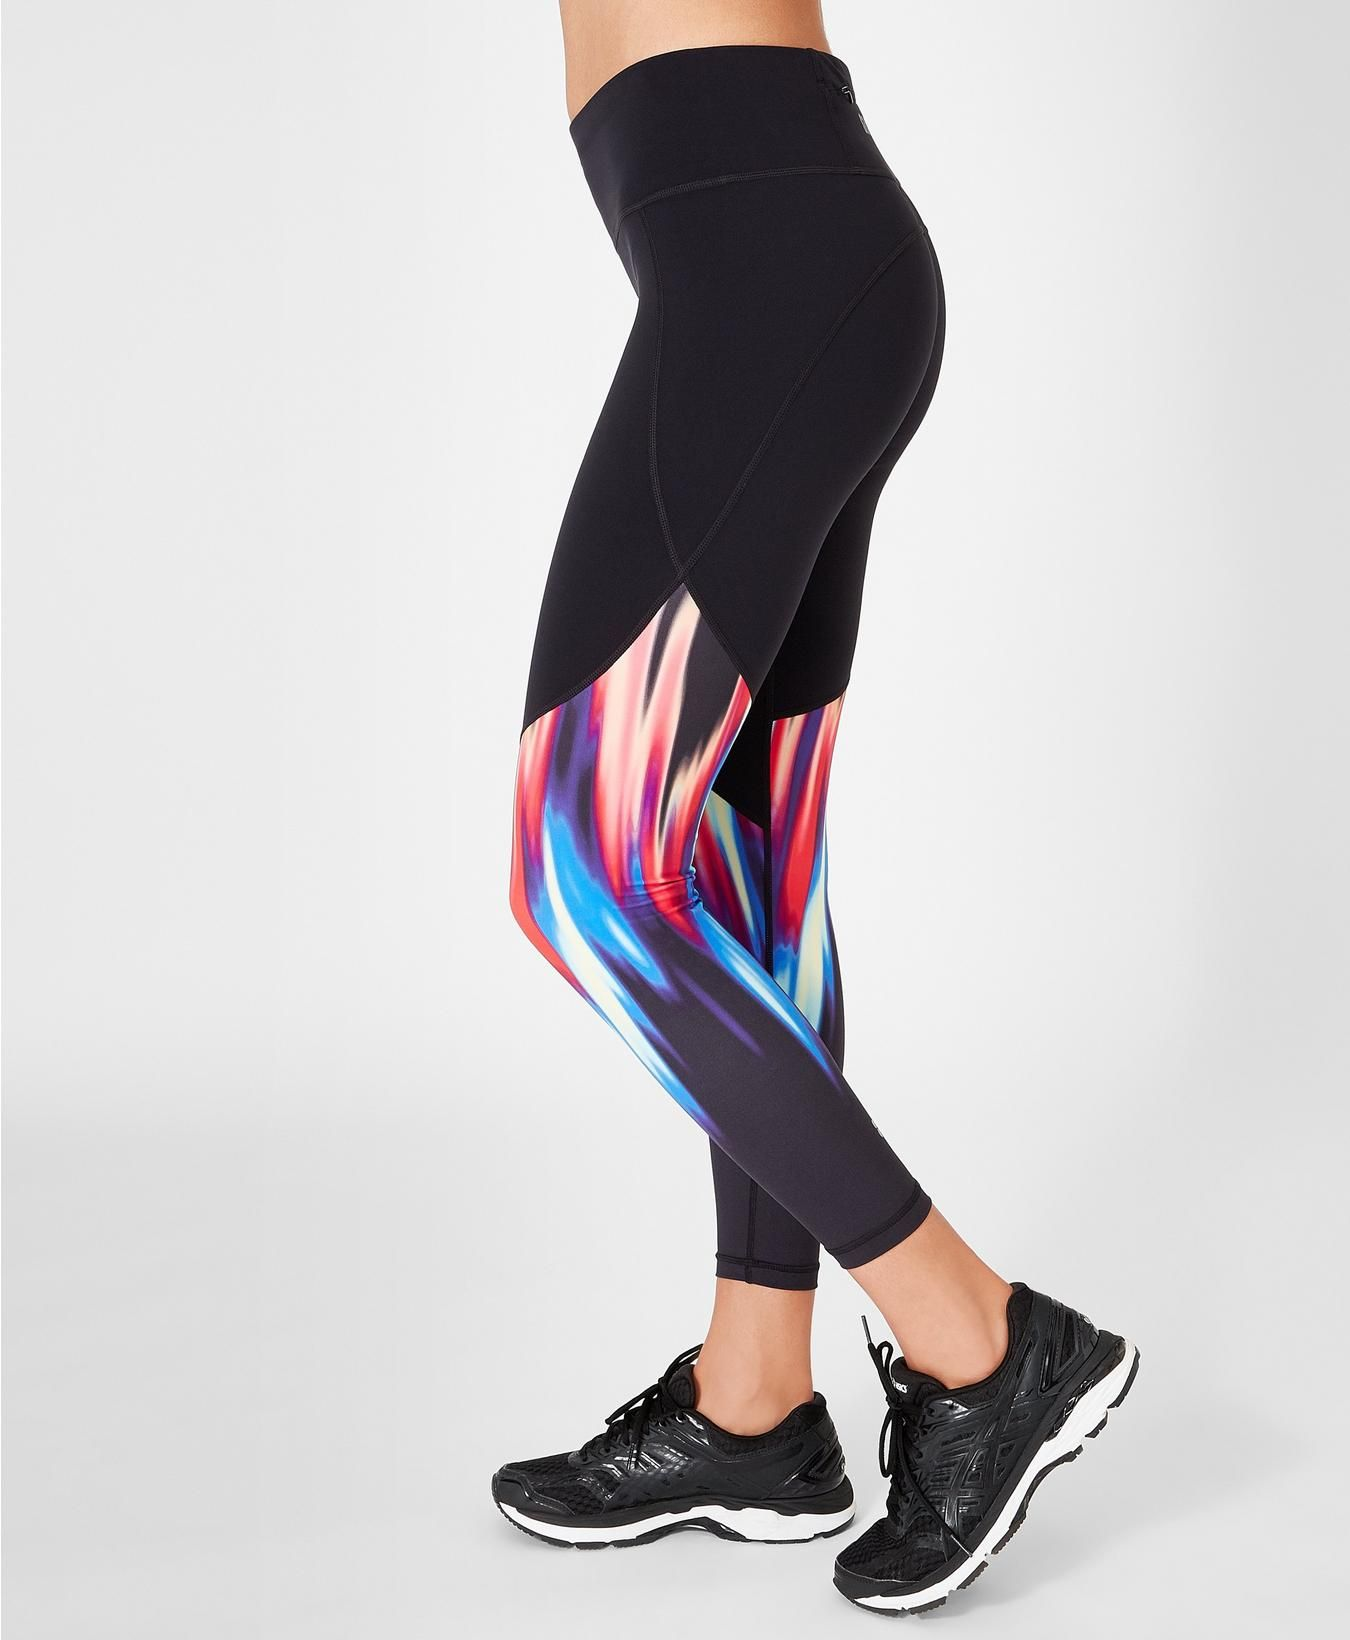 6591b92994f80 The 18 Best Summer Workout Gear Items For Women In 2019